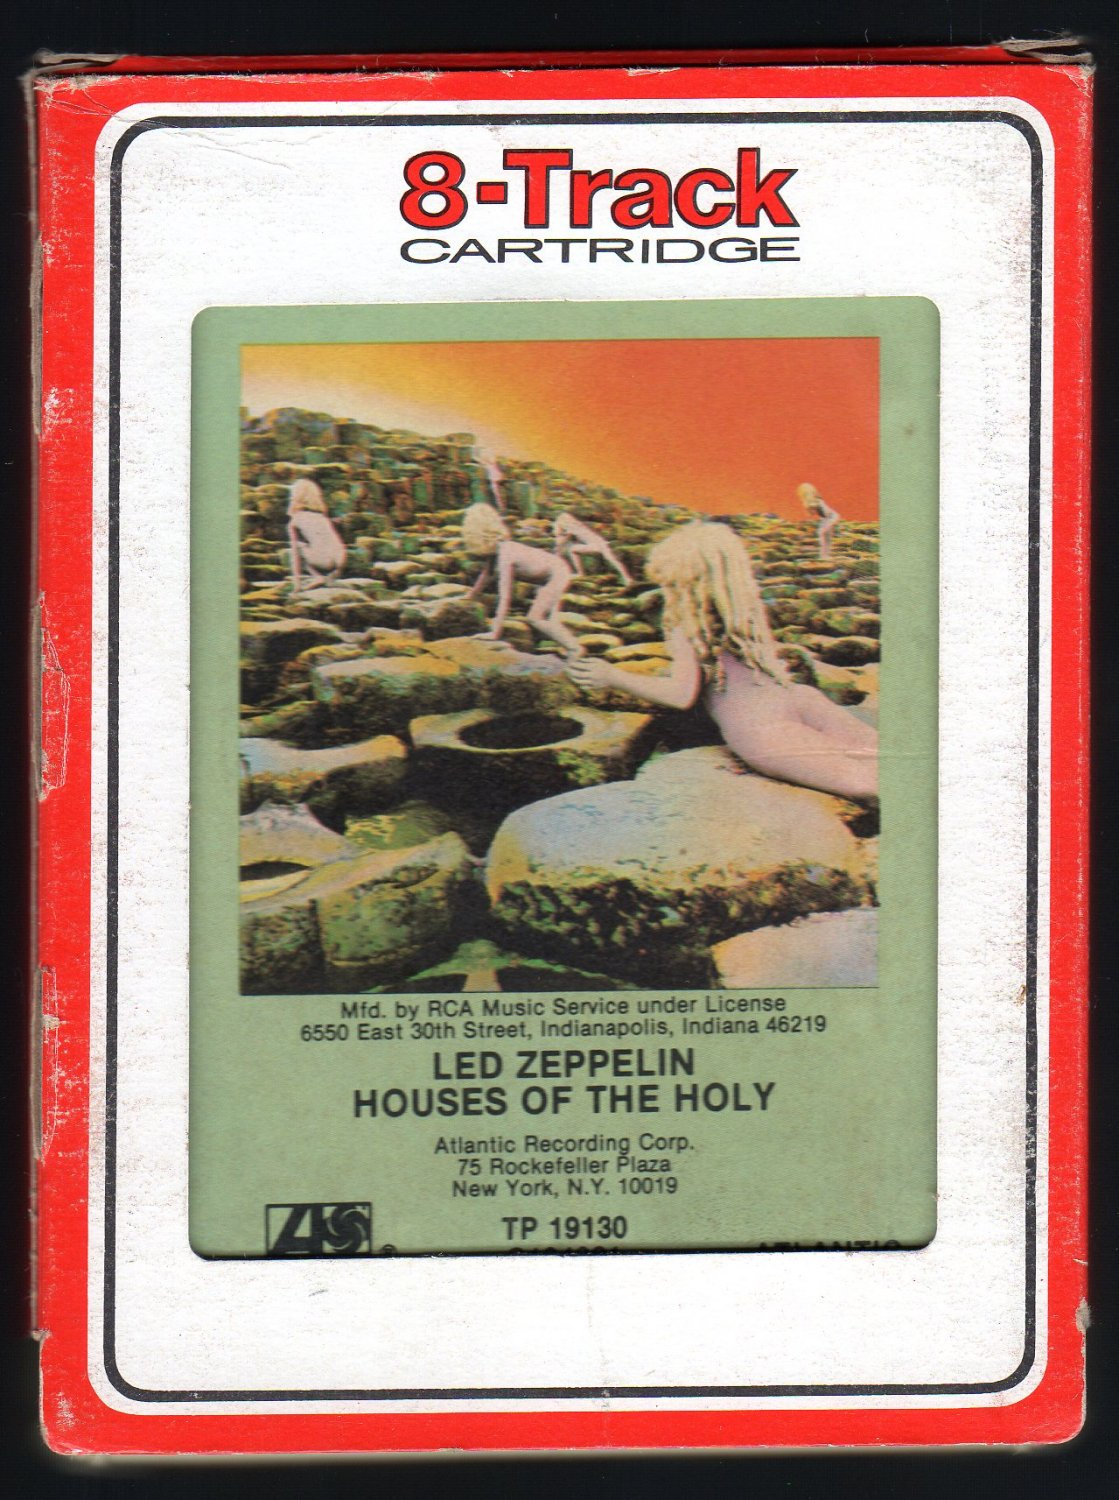 Led Zeppelin - Houses Of The Holy 1973 RCA ATLANTIC A17 8-TRACK TAPE